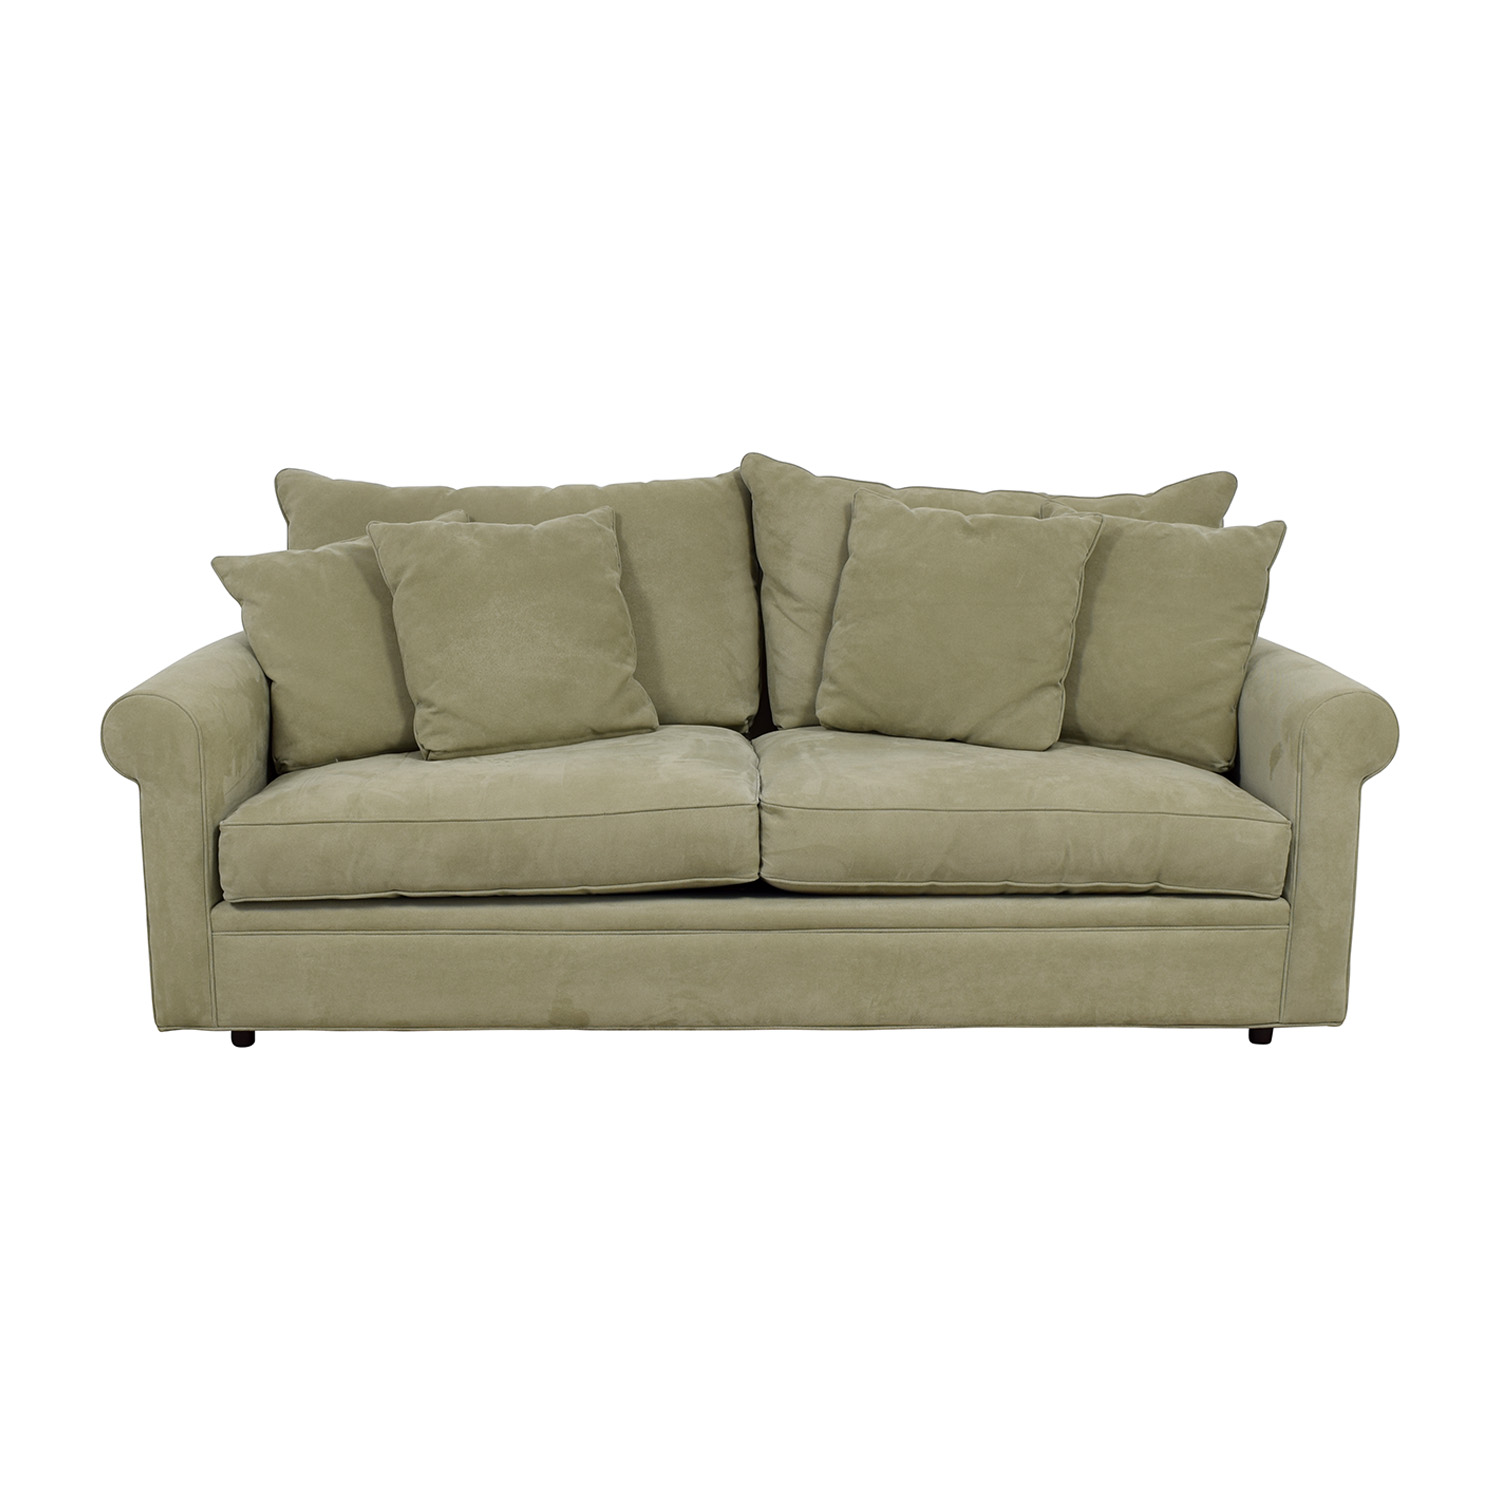 Macy's Macy's Sage Green Two-Cushion Sofa nyc